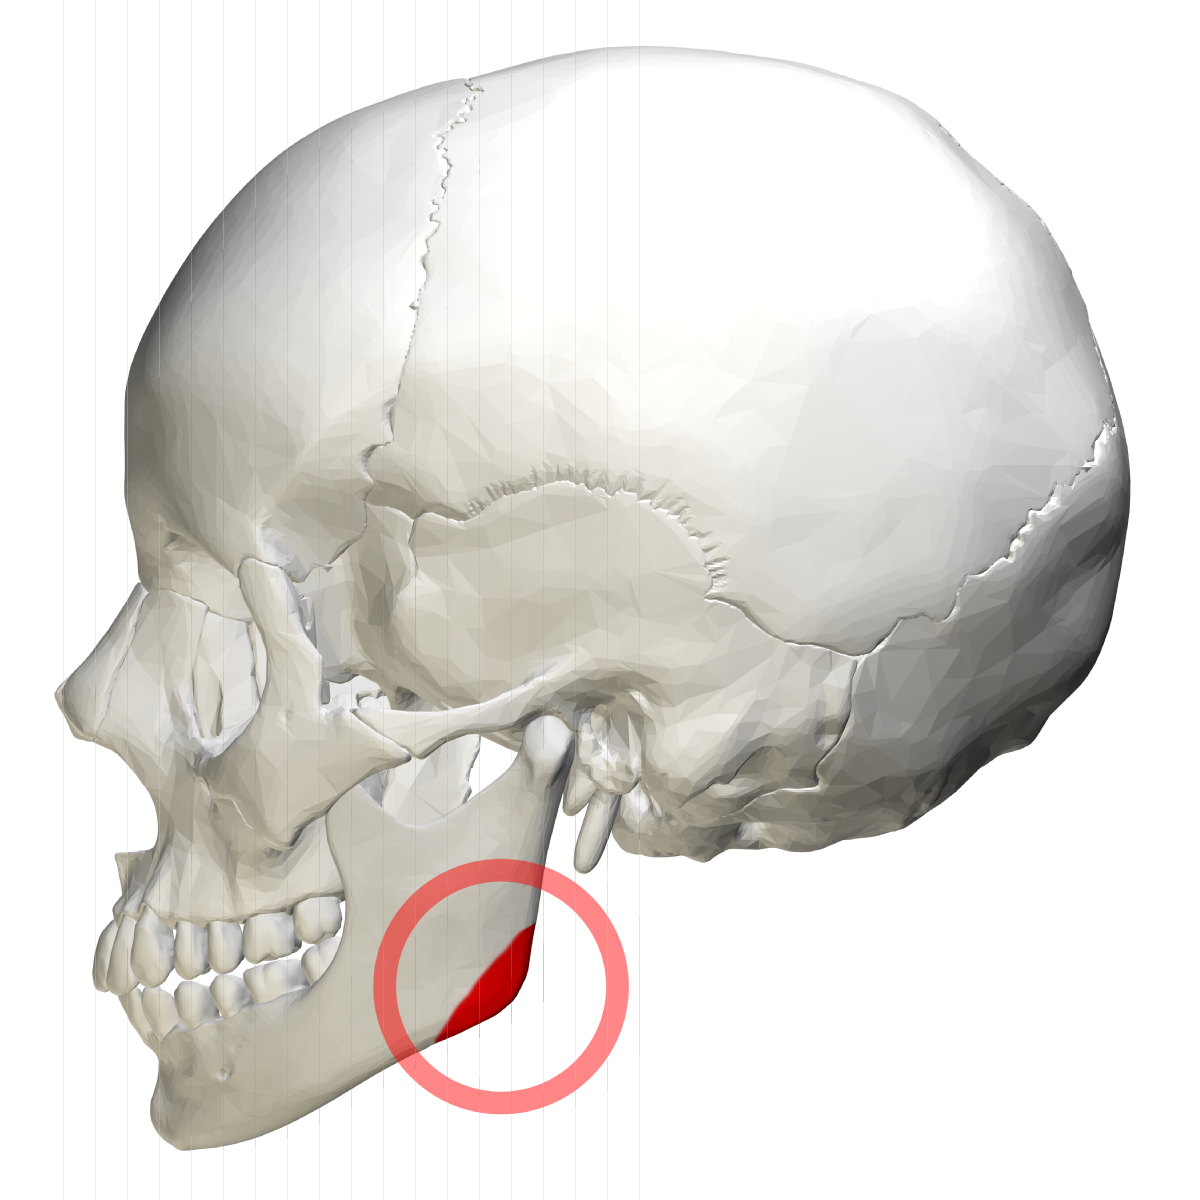 Angle of the mandible - Wikipedia